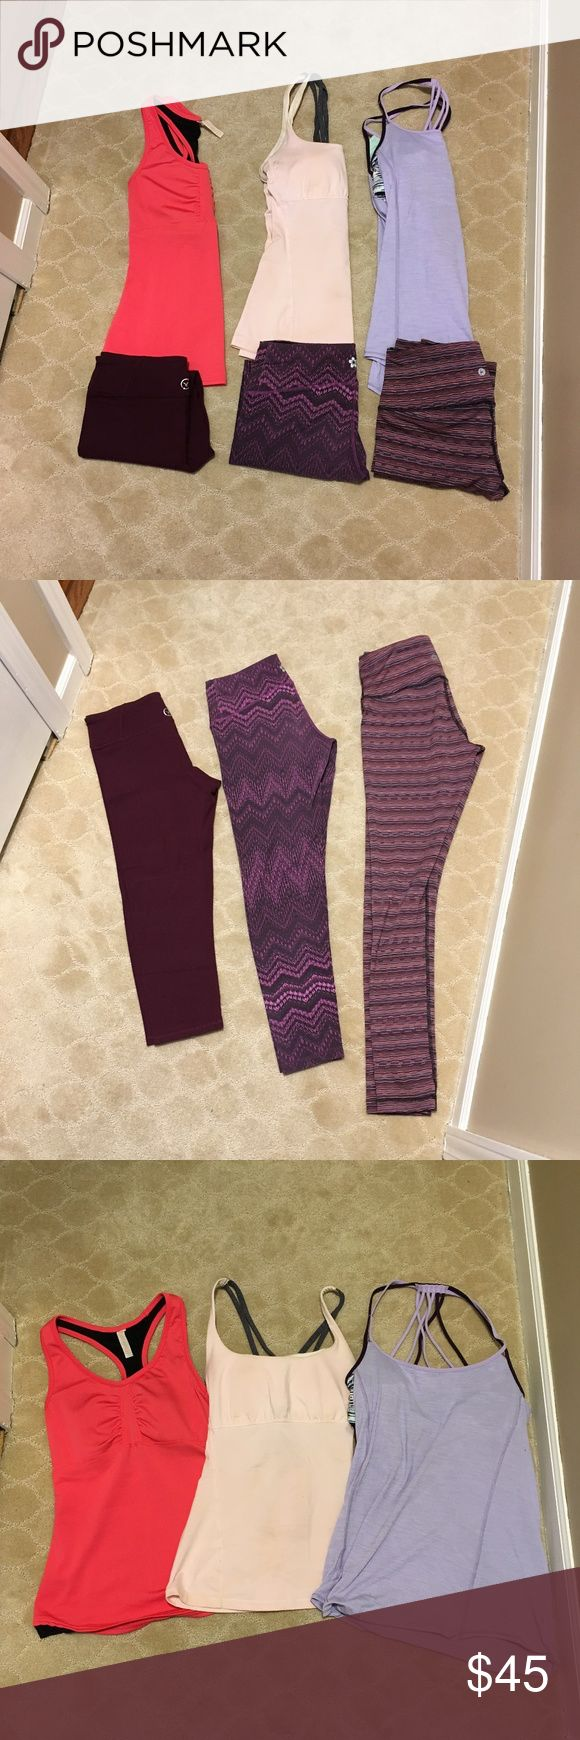 Pretty in Pink Yoga Bundle! Includes: -1 purple Lululemon top with strappy bra (6) -2 pink Lucy tops with built in bra support (S)  -1 pair of stripped full-length leggings (S) -1 pair of cropped purple American Eagle leggings (S) -1 pair of cropped  mandela designed purple leggings (S) lululemon athletica Pants Leggings